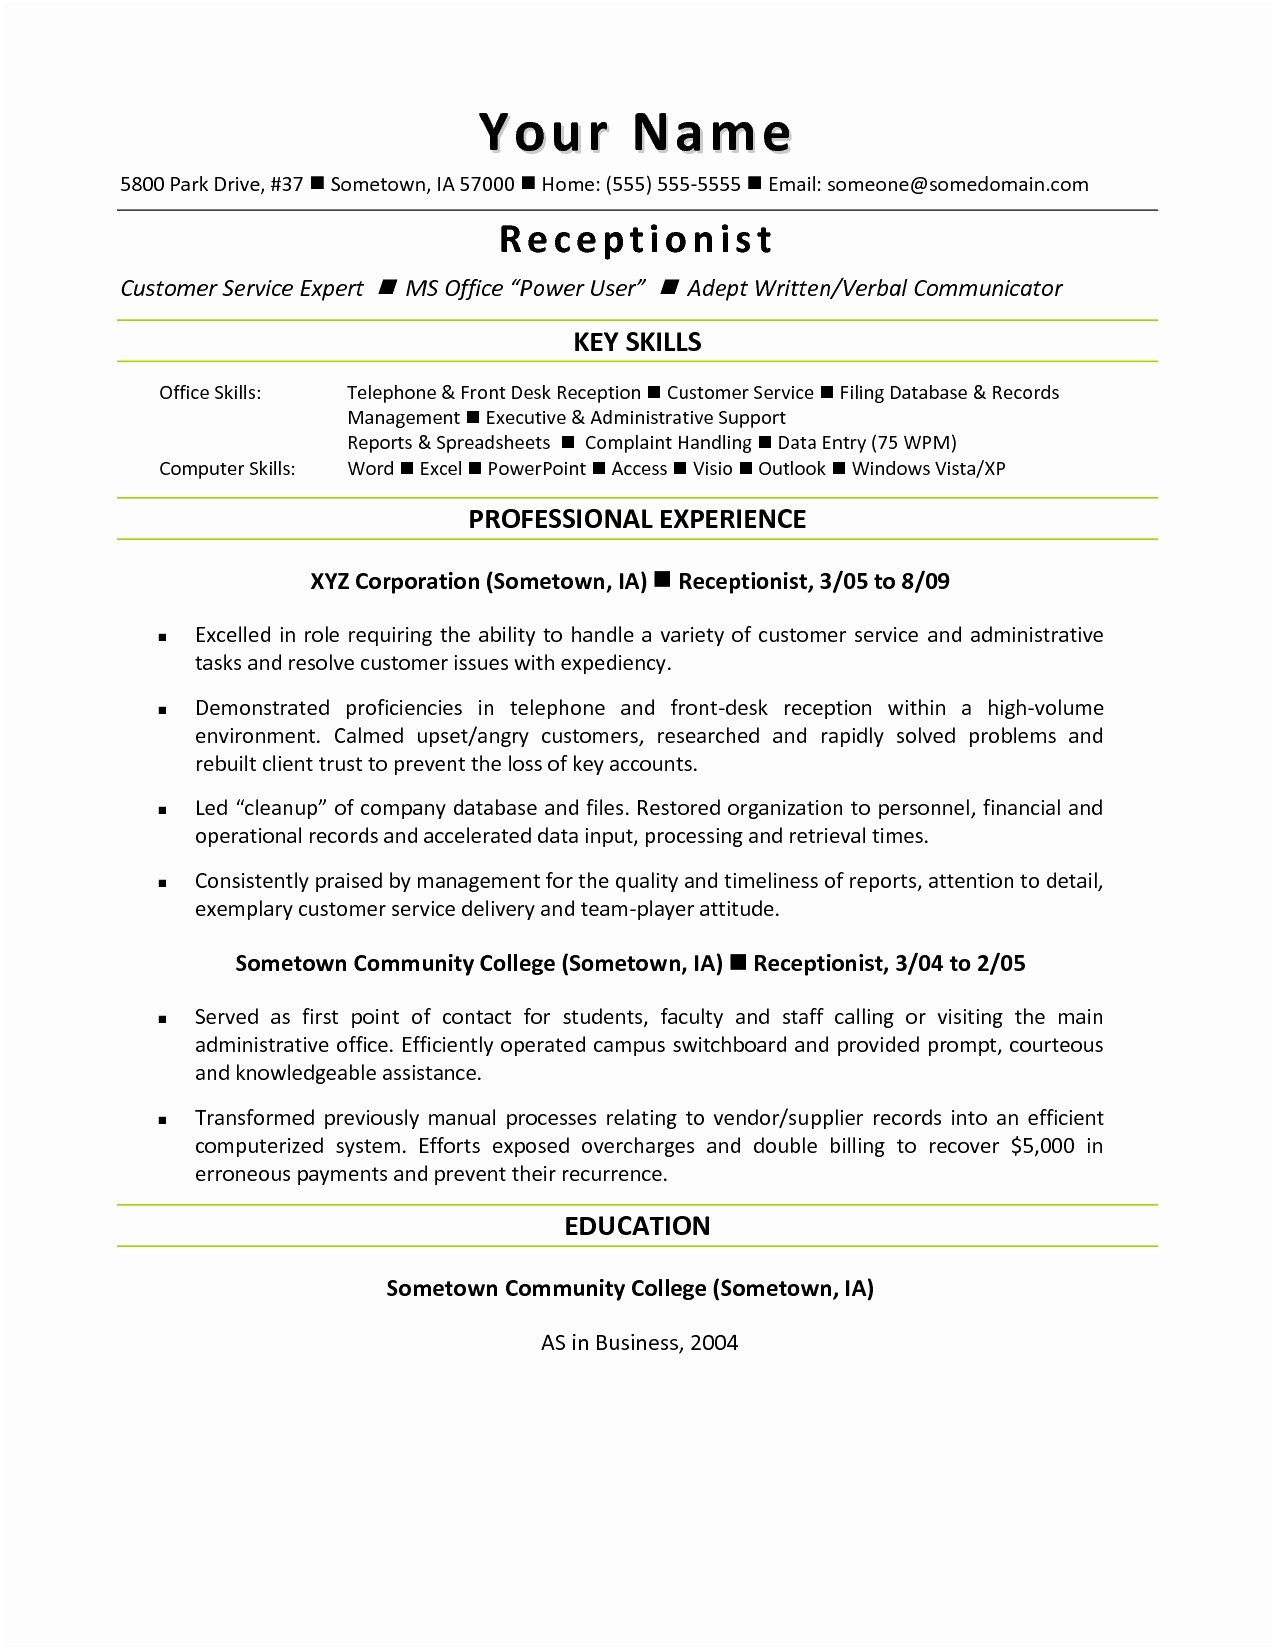 Microsoft Cover Letter Template - Microsoft Template Resume Simple Resume Mail format Sample Fresh